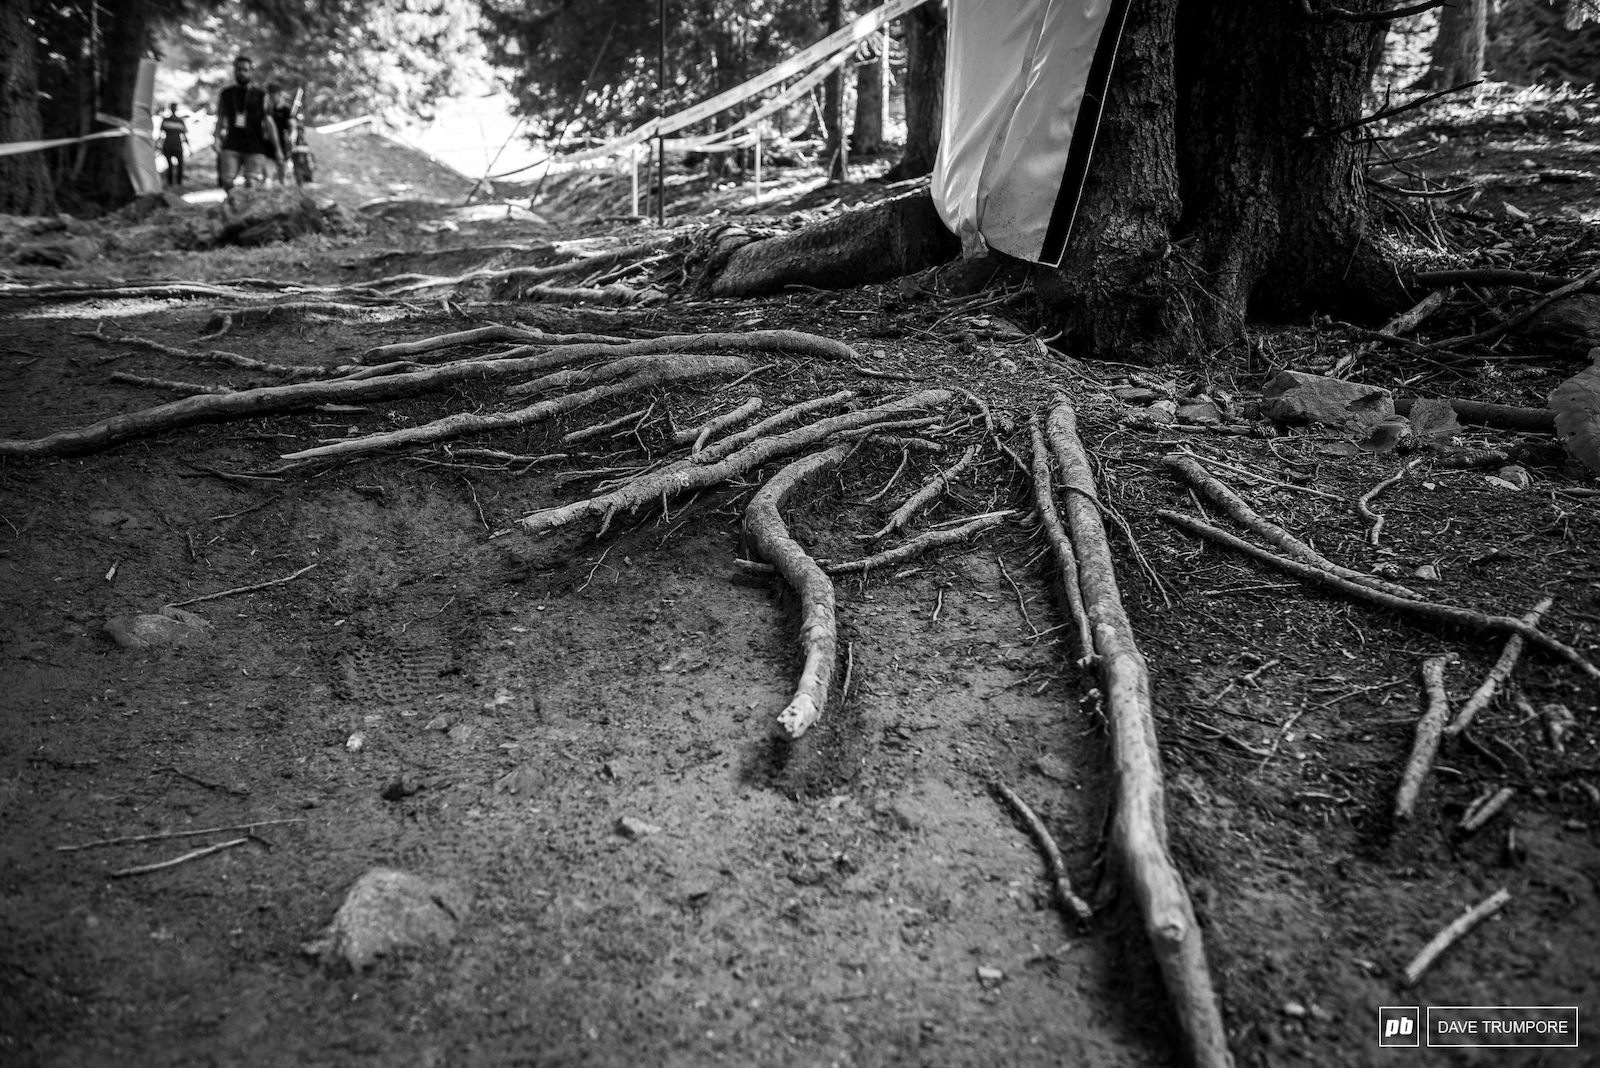 As the track has worn the big roots have come through.